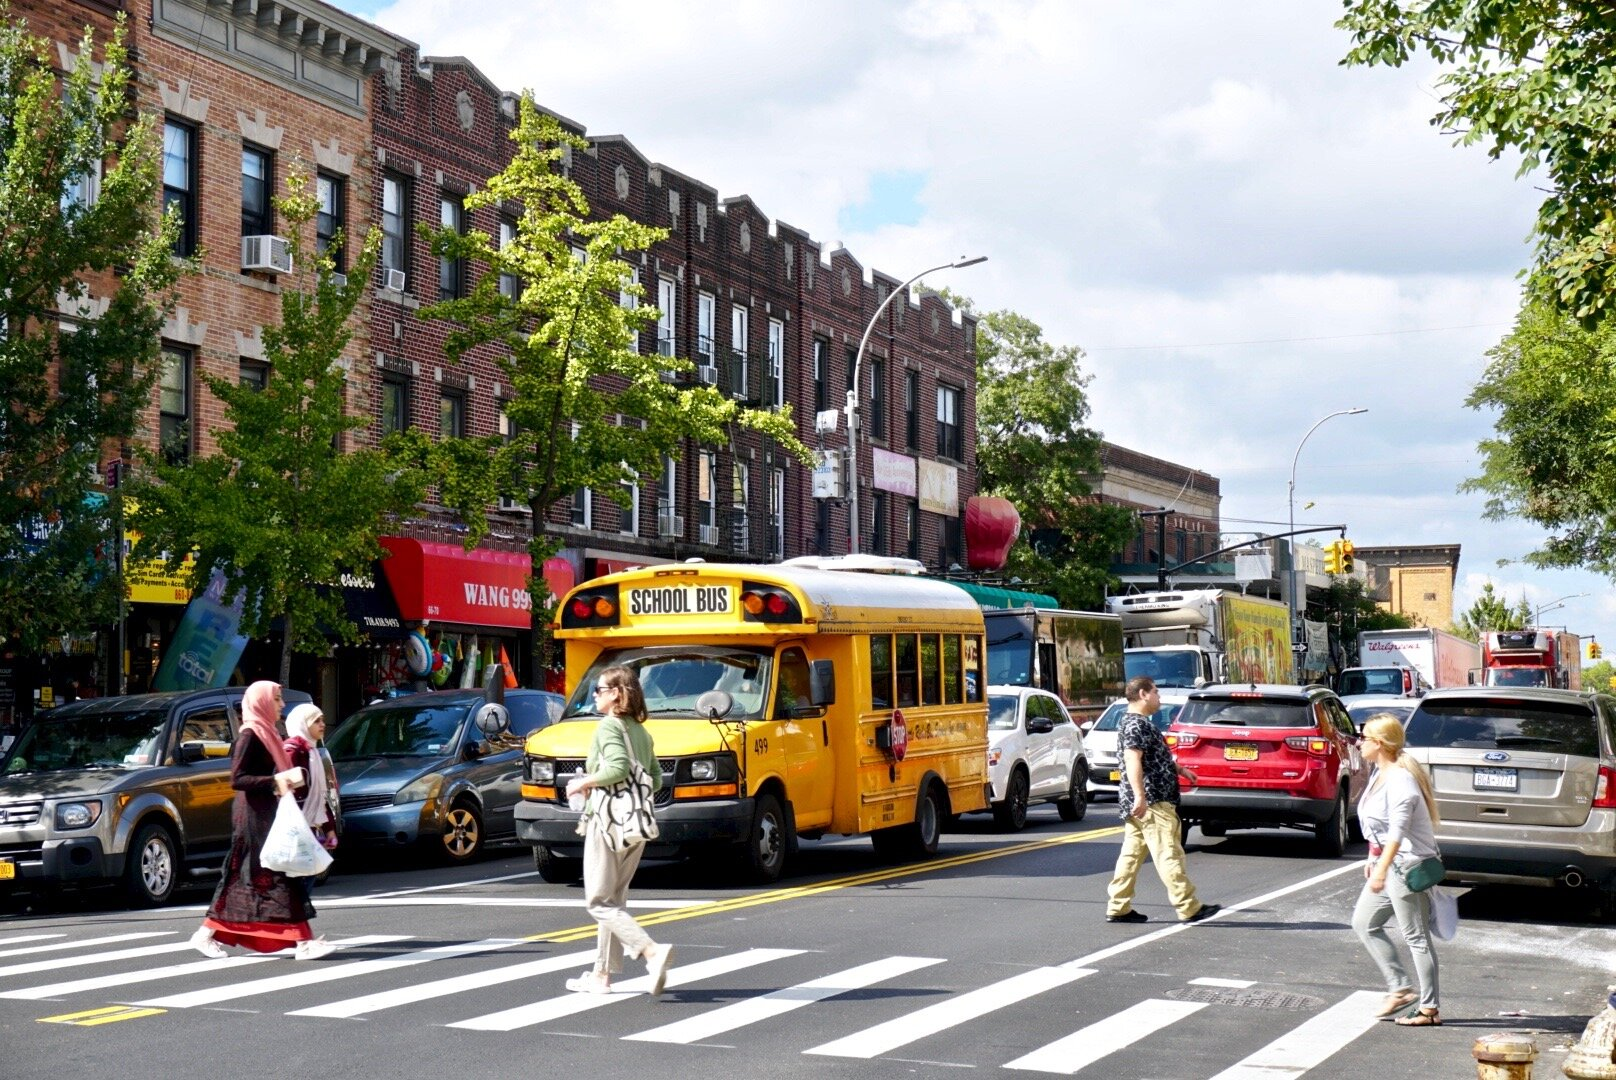 The DOT scored a win in the fight against Fresh Pond Road Coalition of Middle Village, which opposes a bus lane on Fresh Pond Road. The coalition's lawsuit was dismissed by Justice Joseph Esposito on Monday.  Eagle  file photo by Luca Powell.